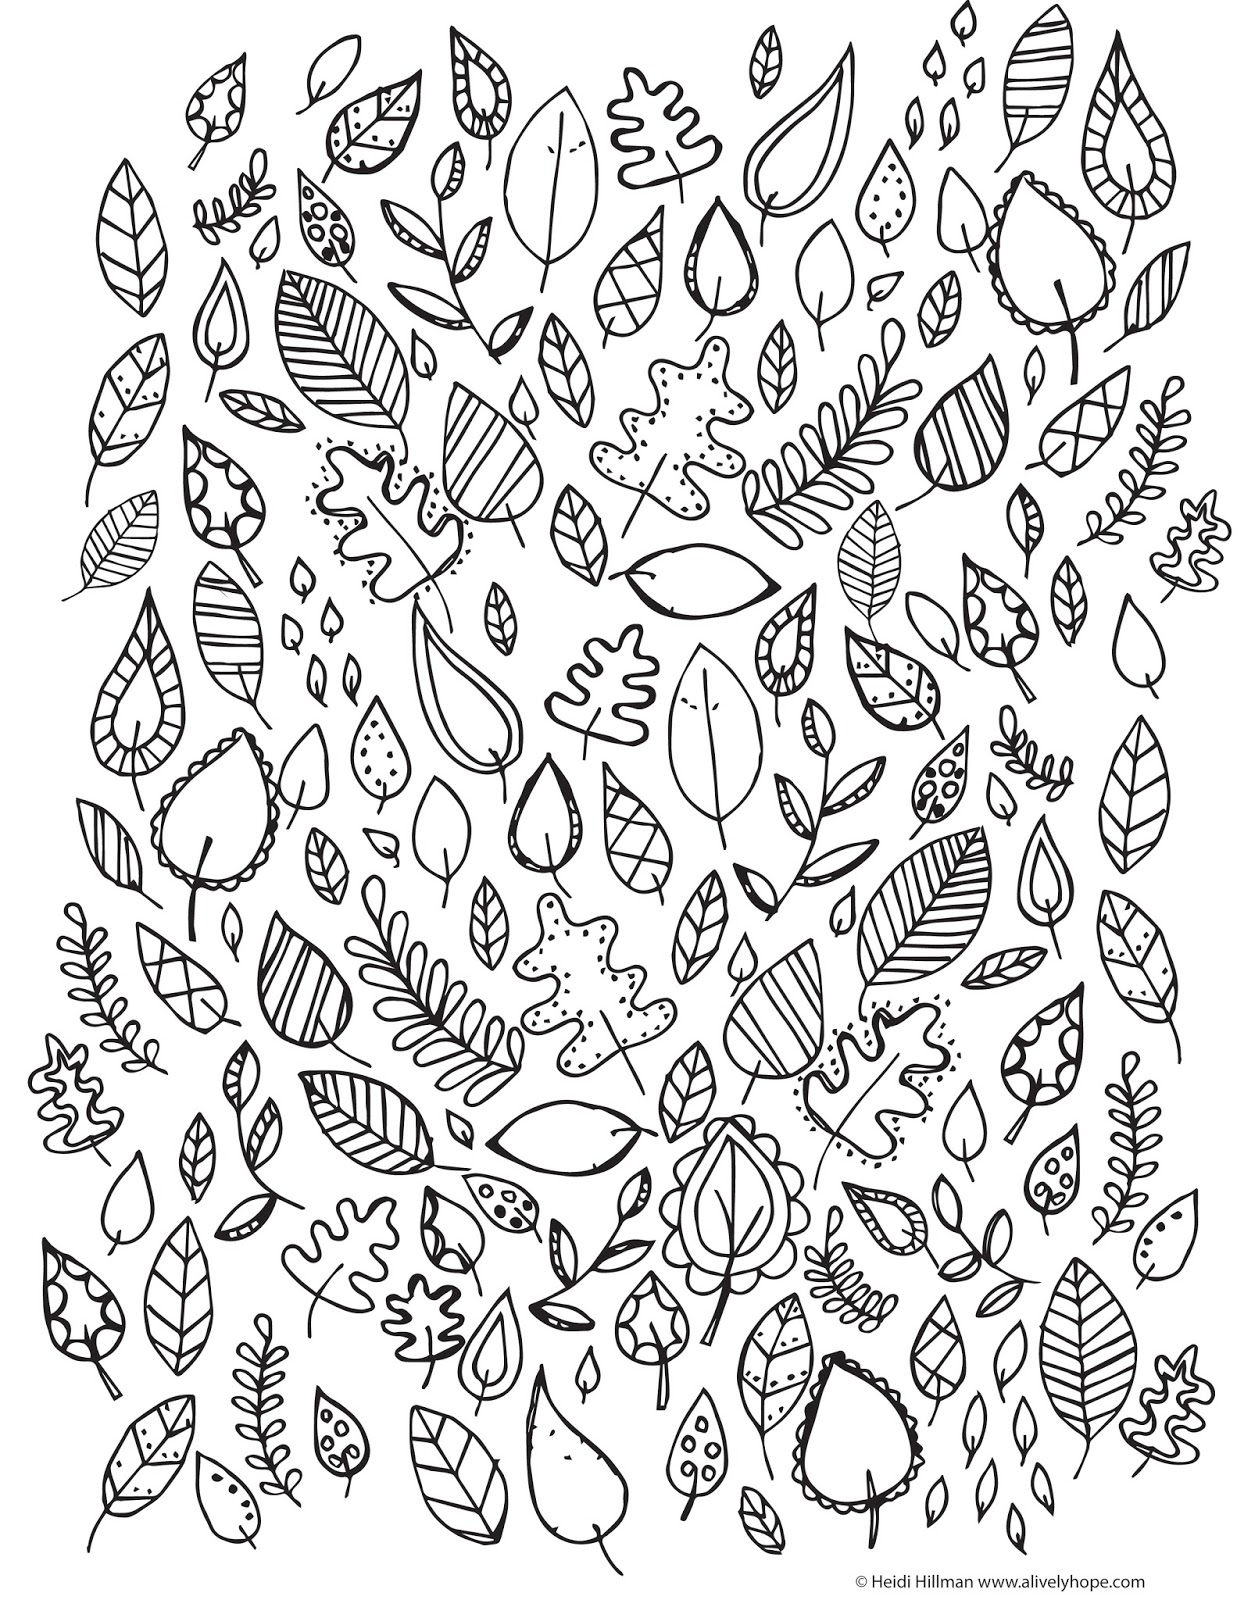 A Lively Hope: Free Gratitude Coloring Page